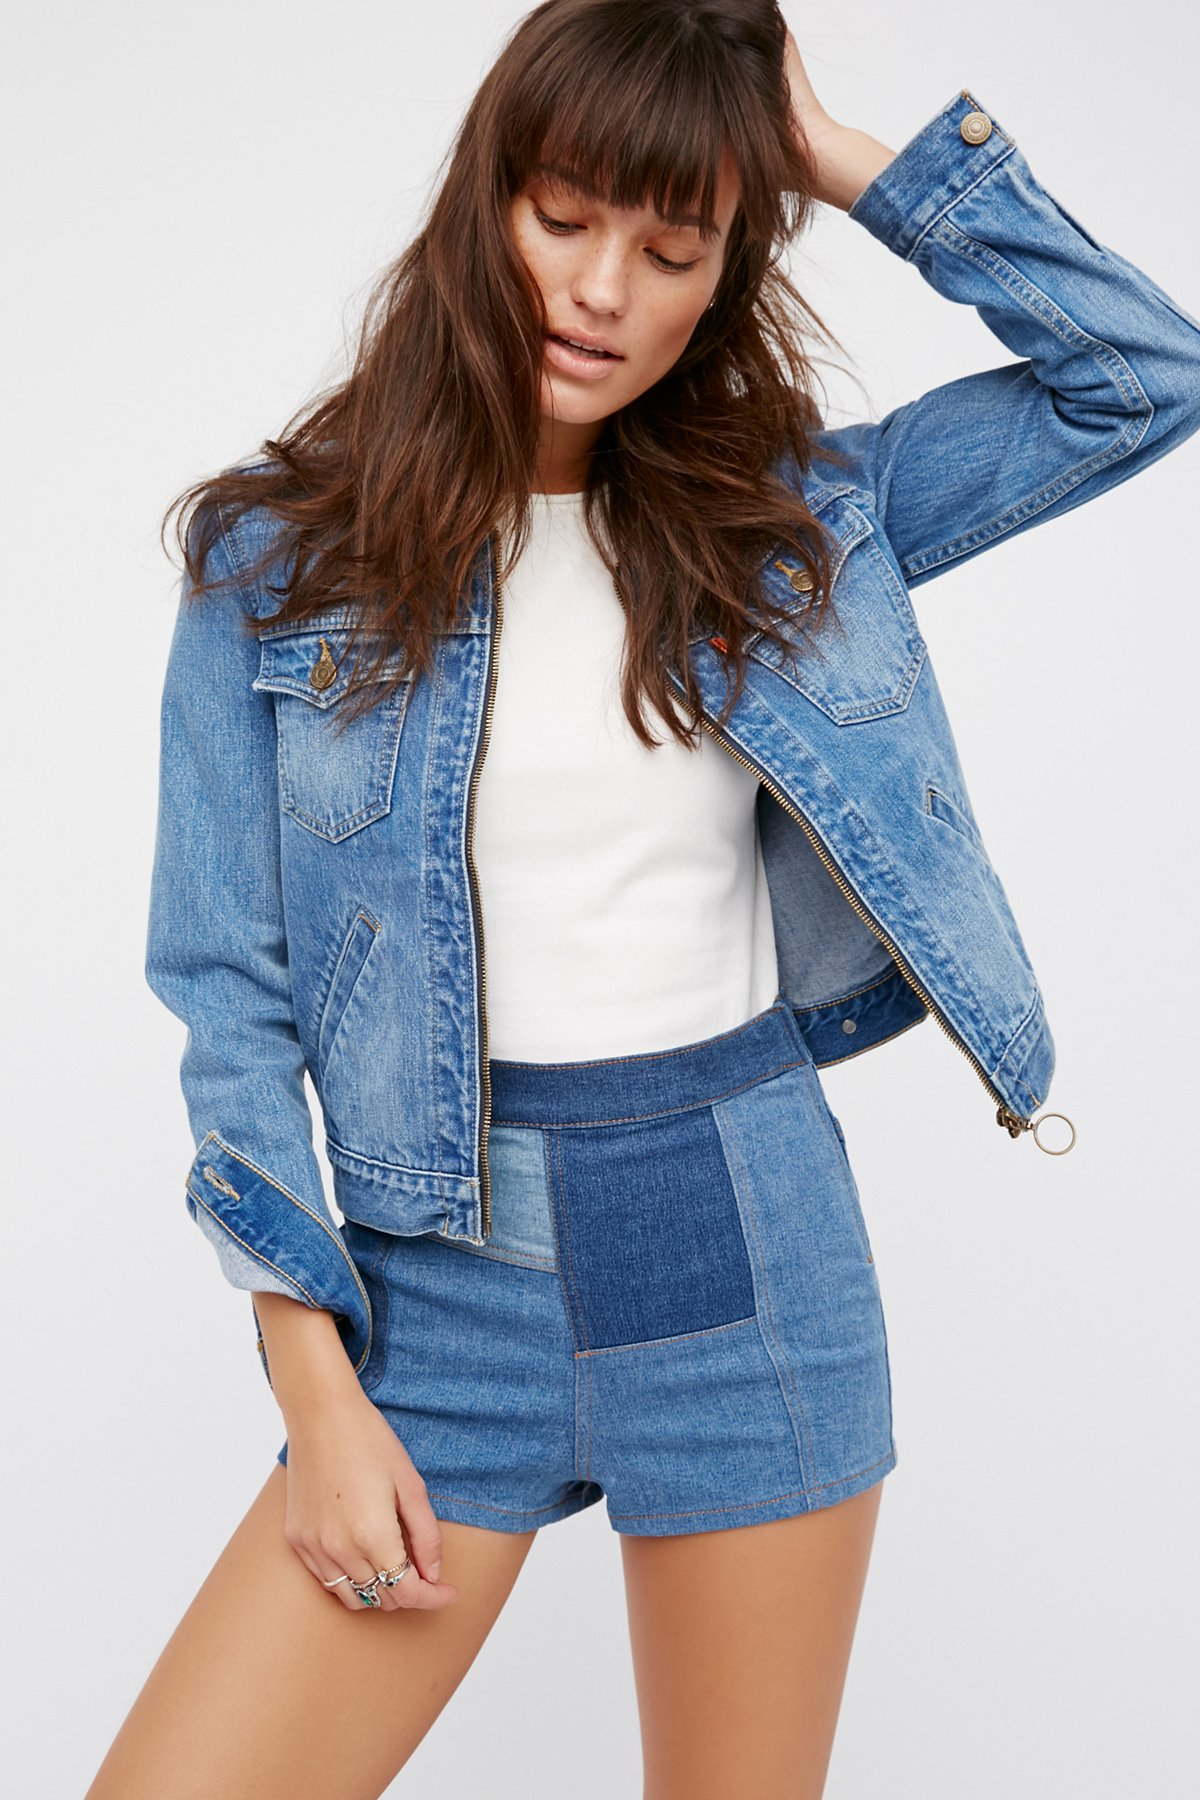 Patched High & Tight Denim Shorts at Free People Clothing Boutique